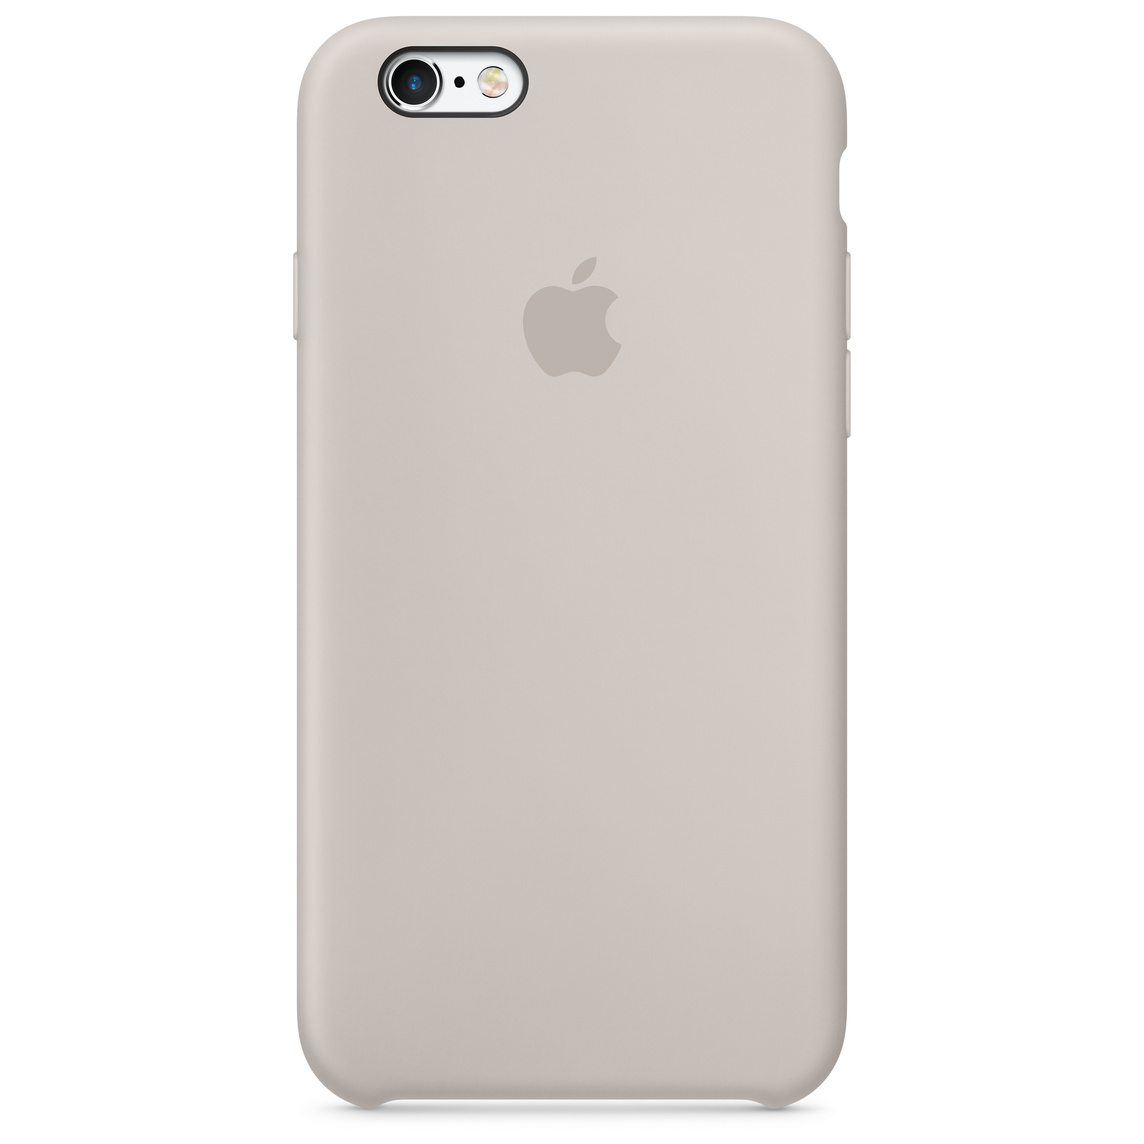 sports shoes 443b2 0780d iPhone 6 / 6s Silicone Case - Stone